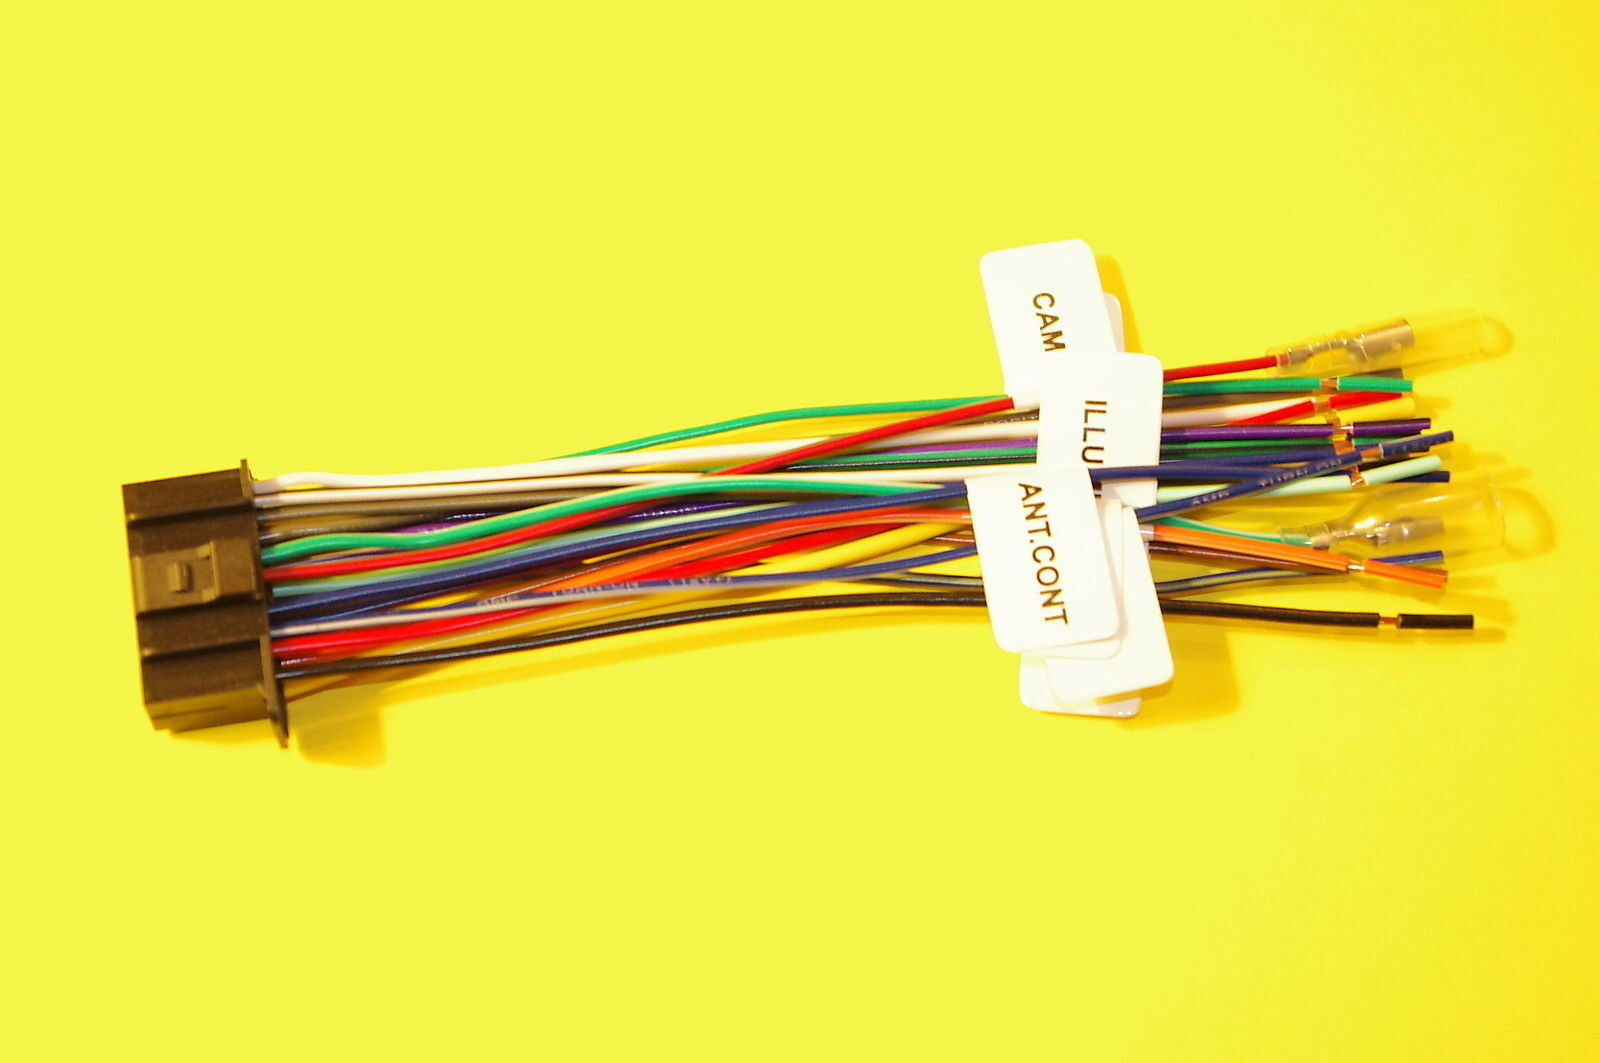 Wire Harness For Kenwood Ddx9703s 100 Copper Ddx 9703s New 22 Pin Wiring Diagram 1 Of 2free Shipping See More